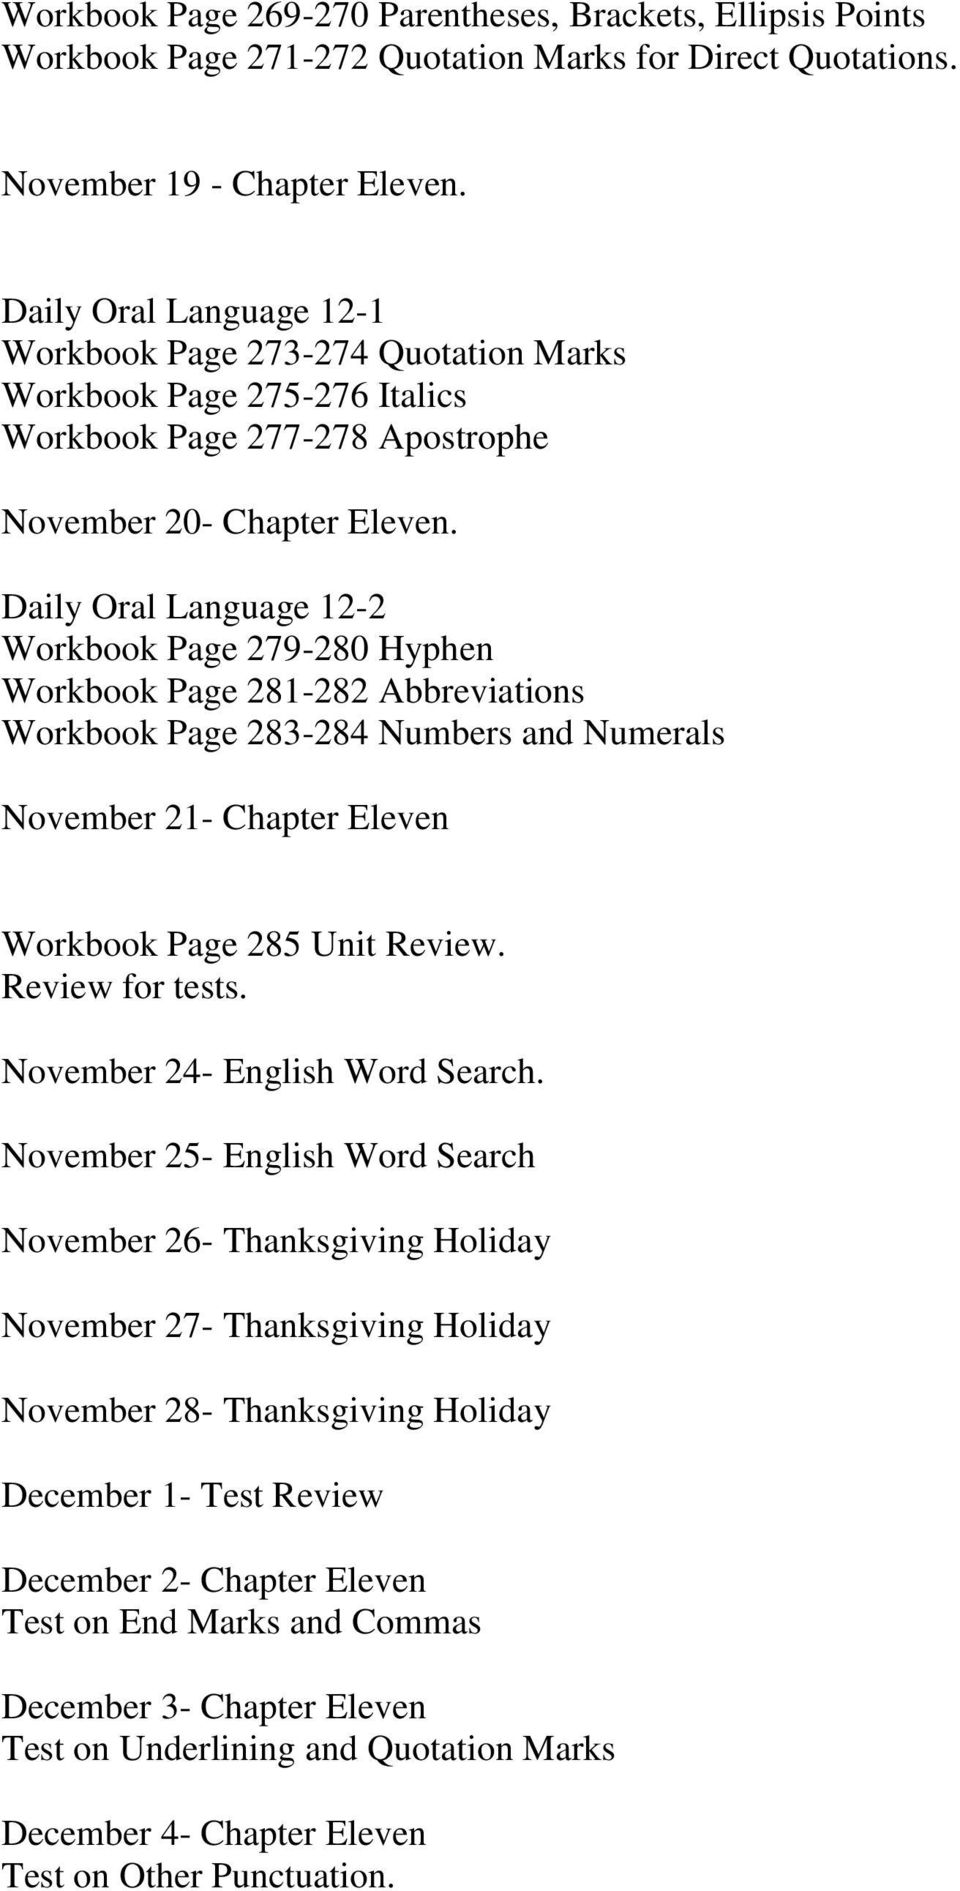 Daily Oral Language 12-2 Workbook Page 279-280 Hyphen Workbook Page 281-282 Abbreviations Workbook Page 283-284 Numbers and Numerals November 21- Chapter Eleven Workbook Page 285 Unit Review.